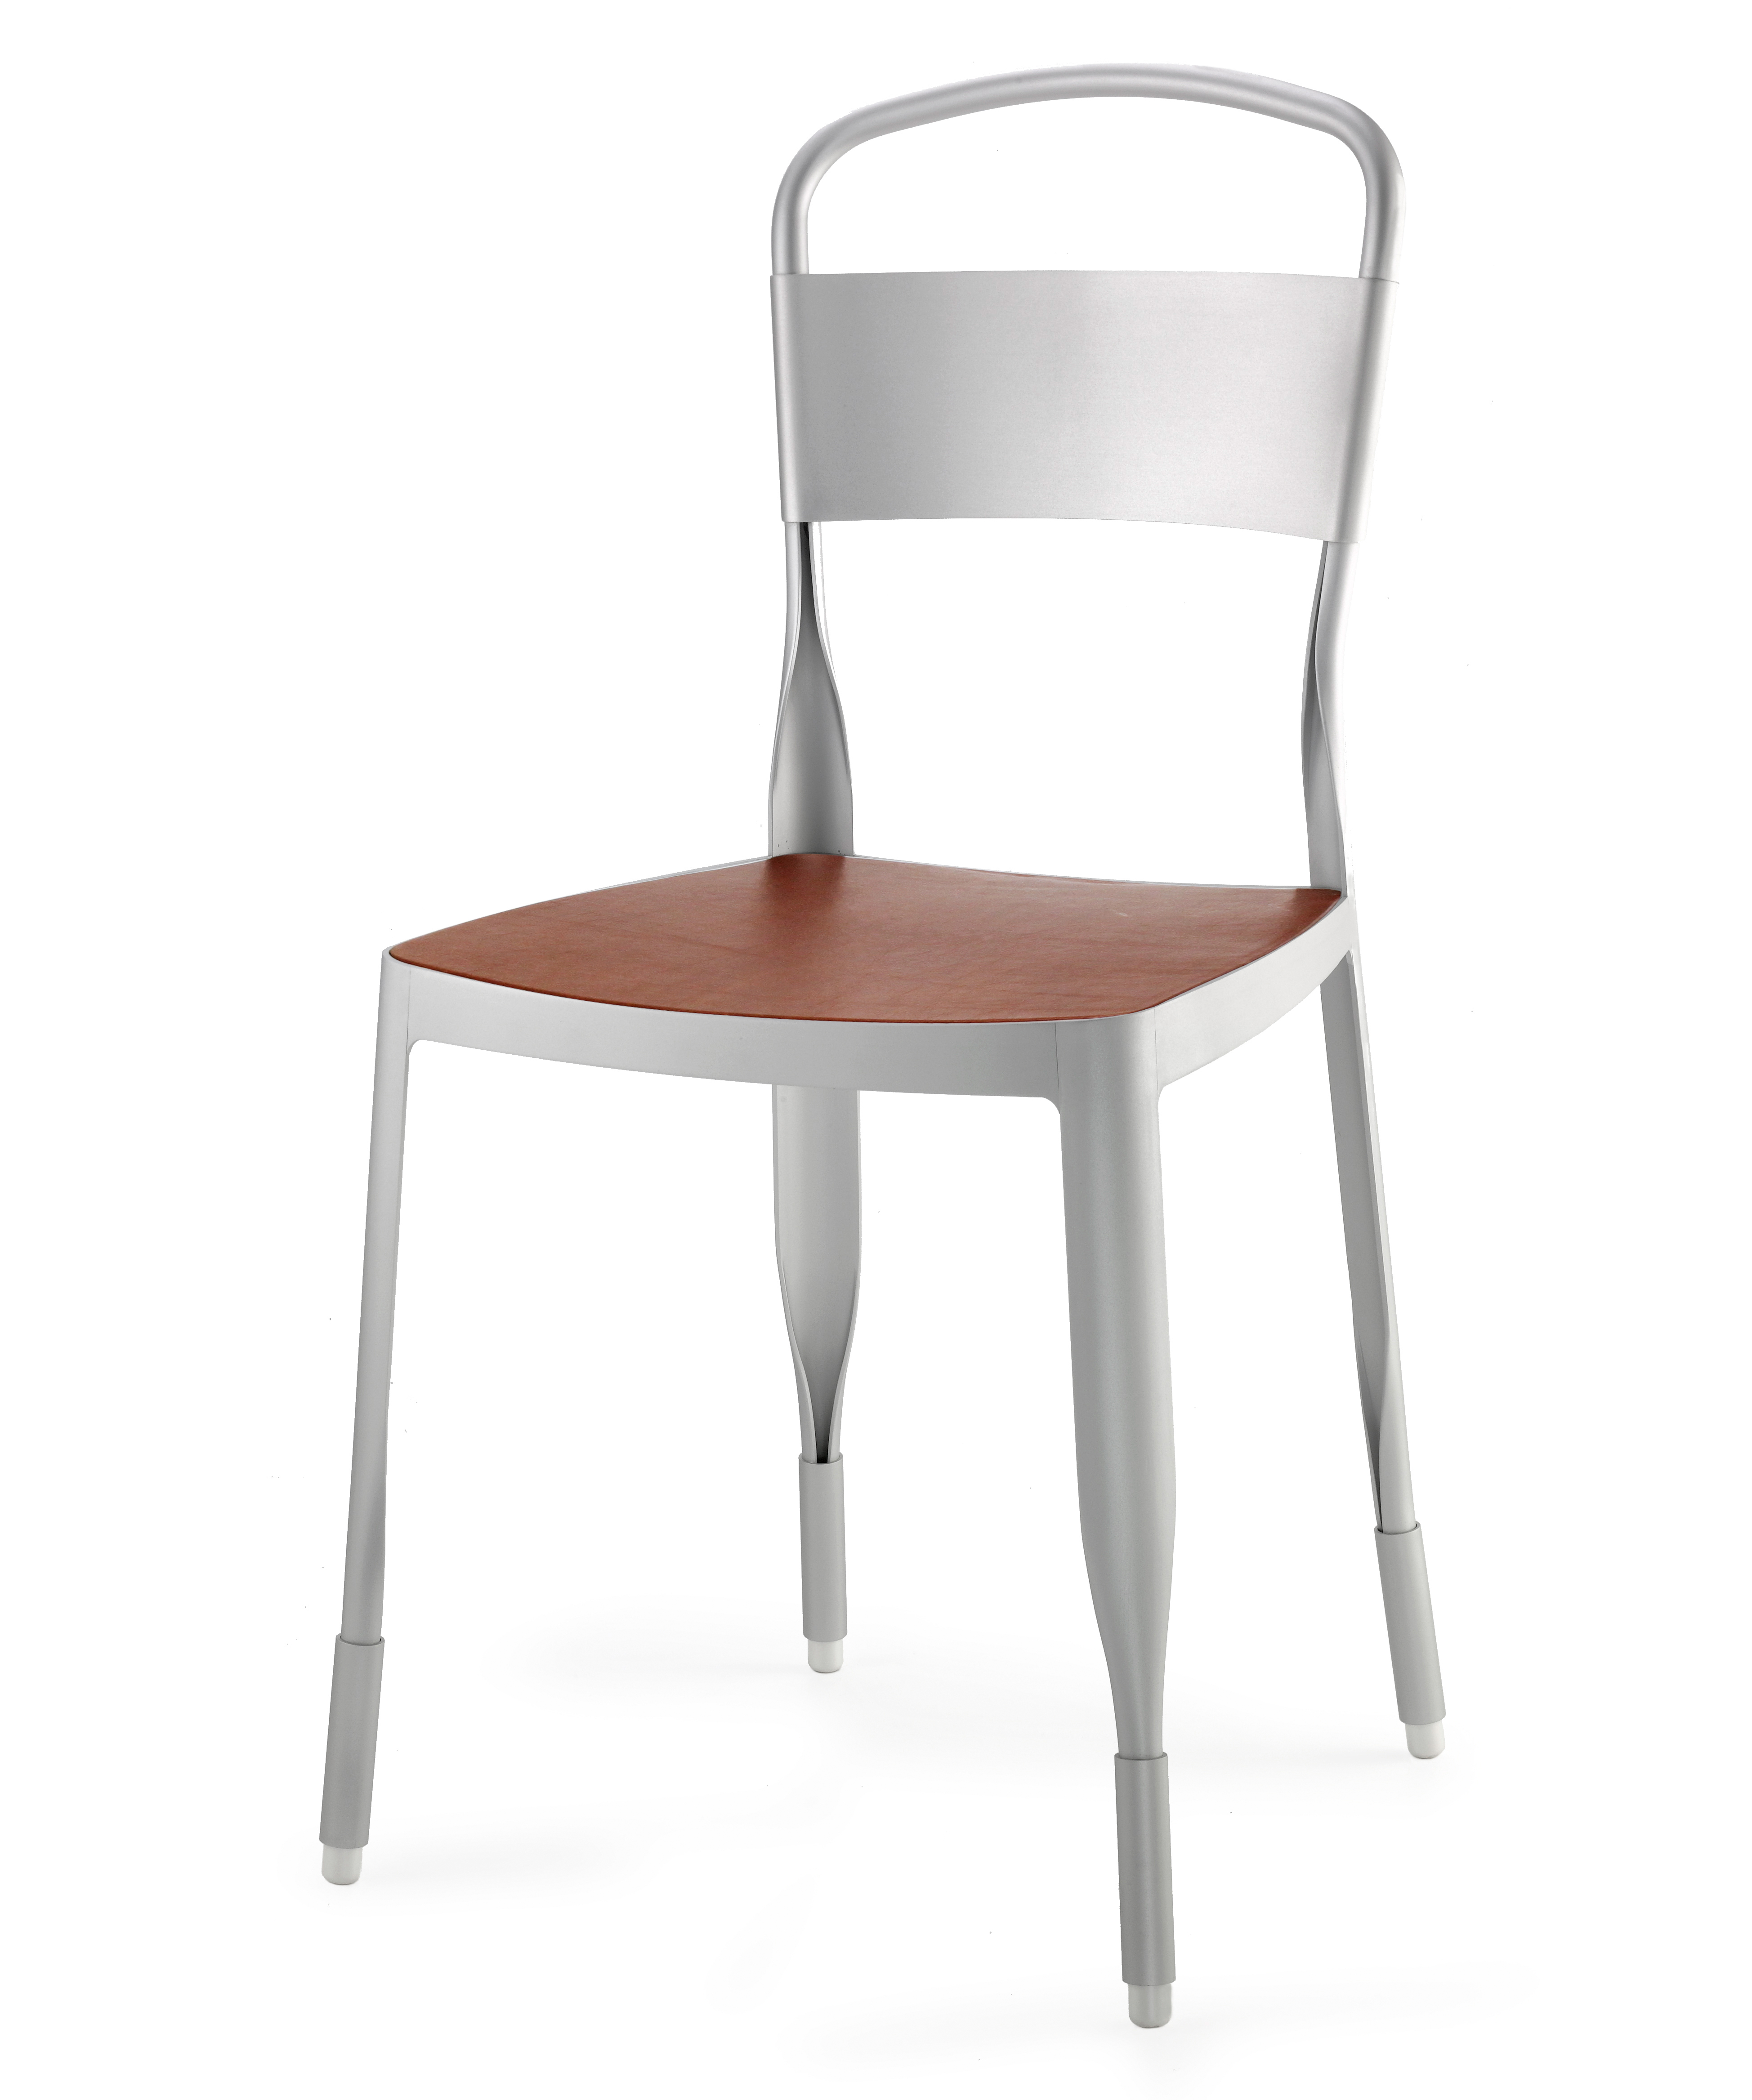 Chair 4A for EOQ, 2012